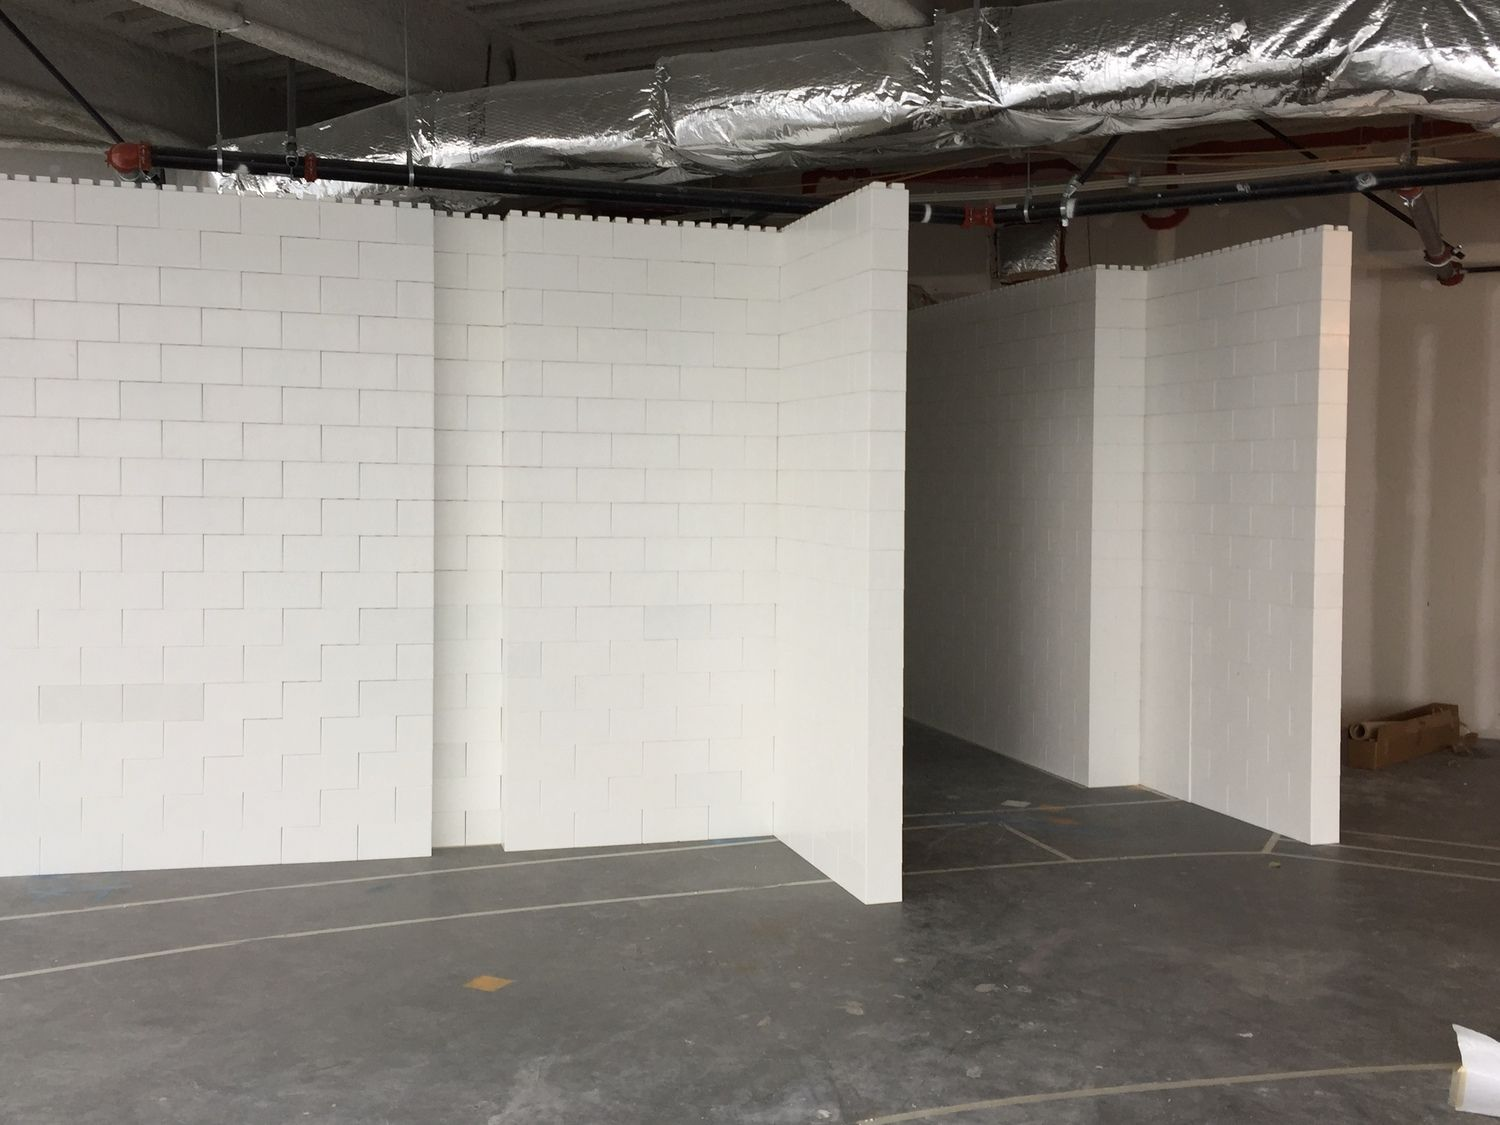 Easy To Build Modular Walls And Room Dividers For Home And Industrial Use Everblock Systems In 2020 Modular Walls Room Divider Portable Walls